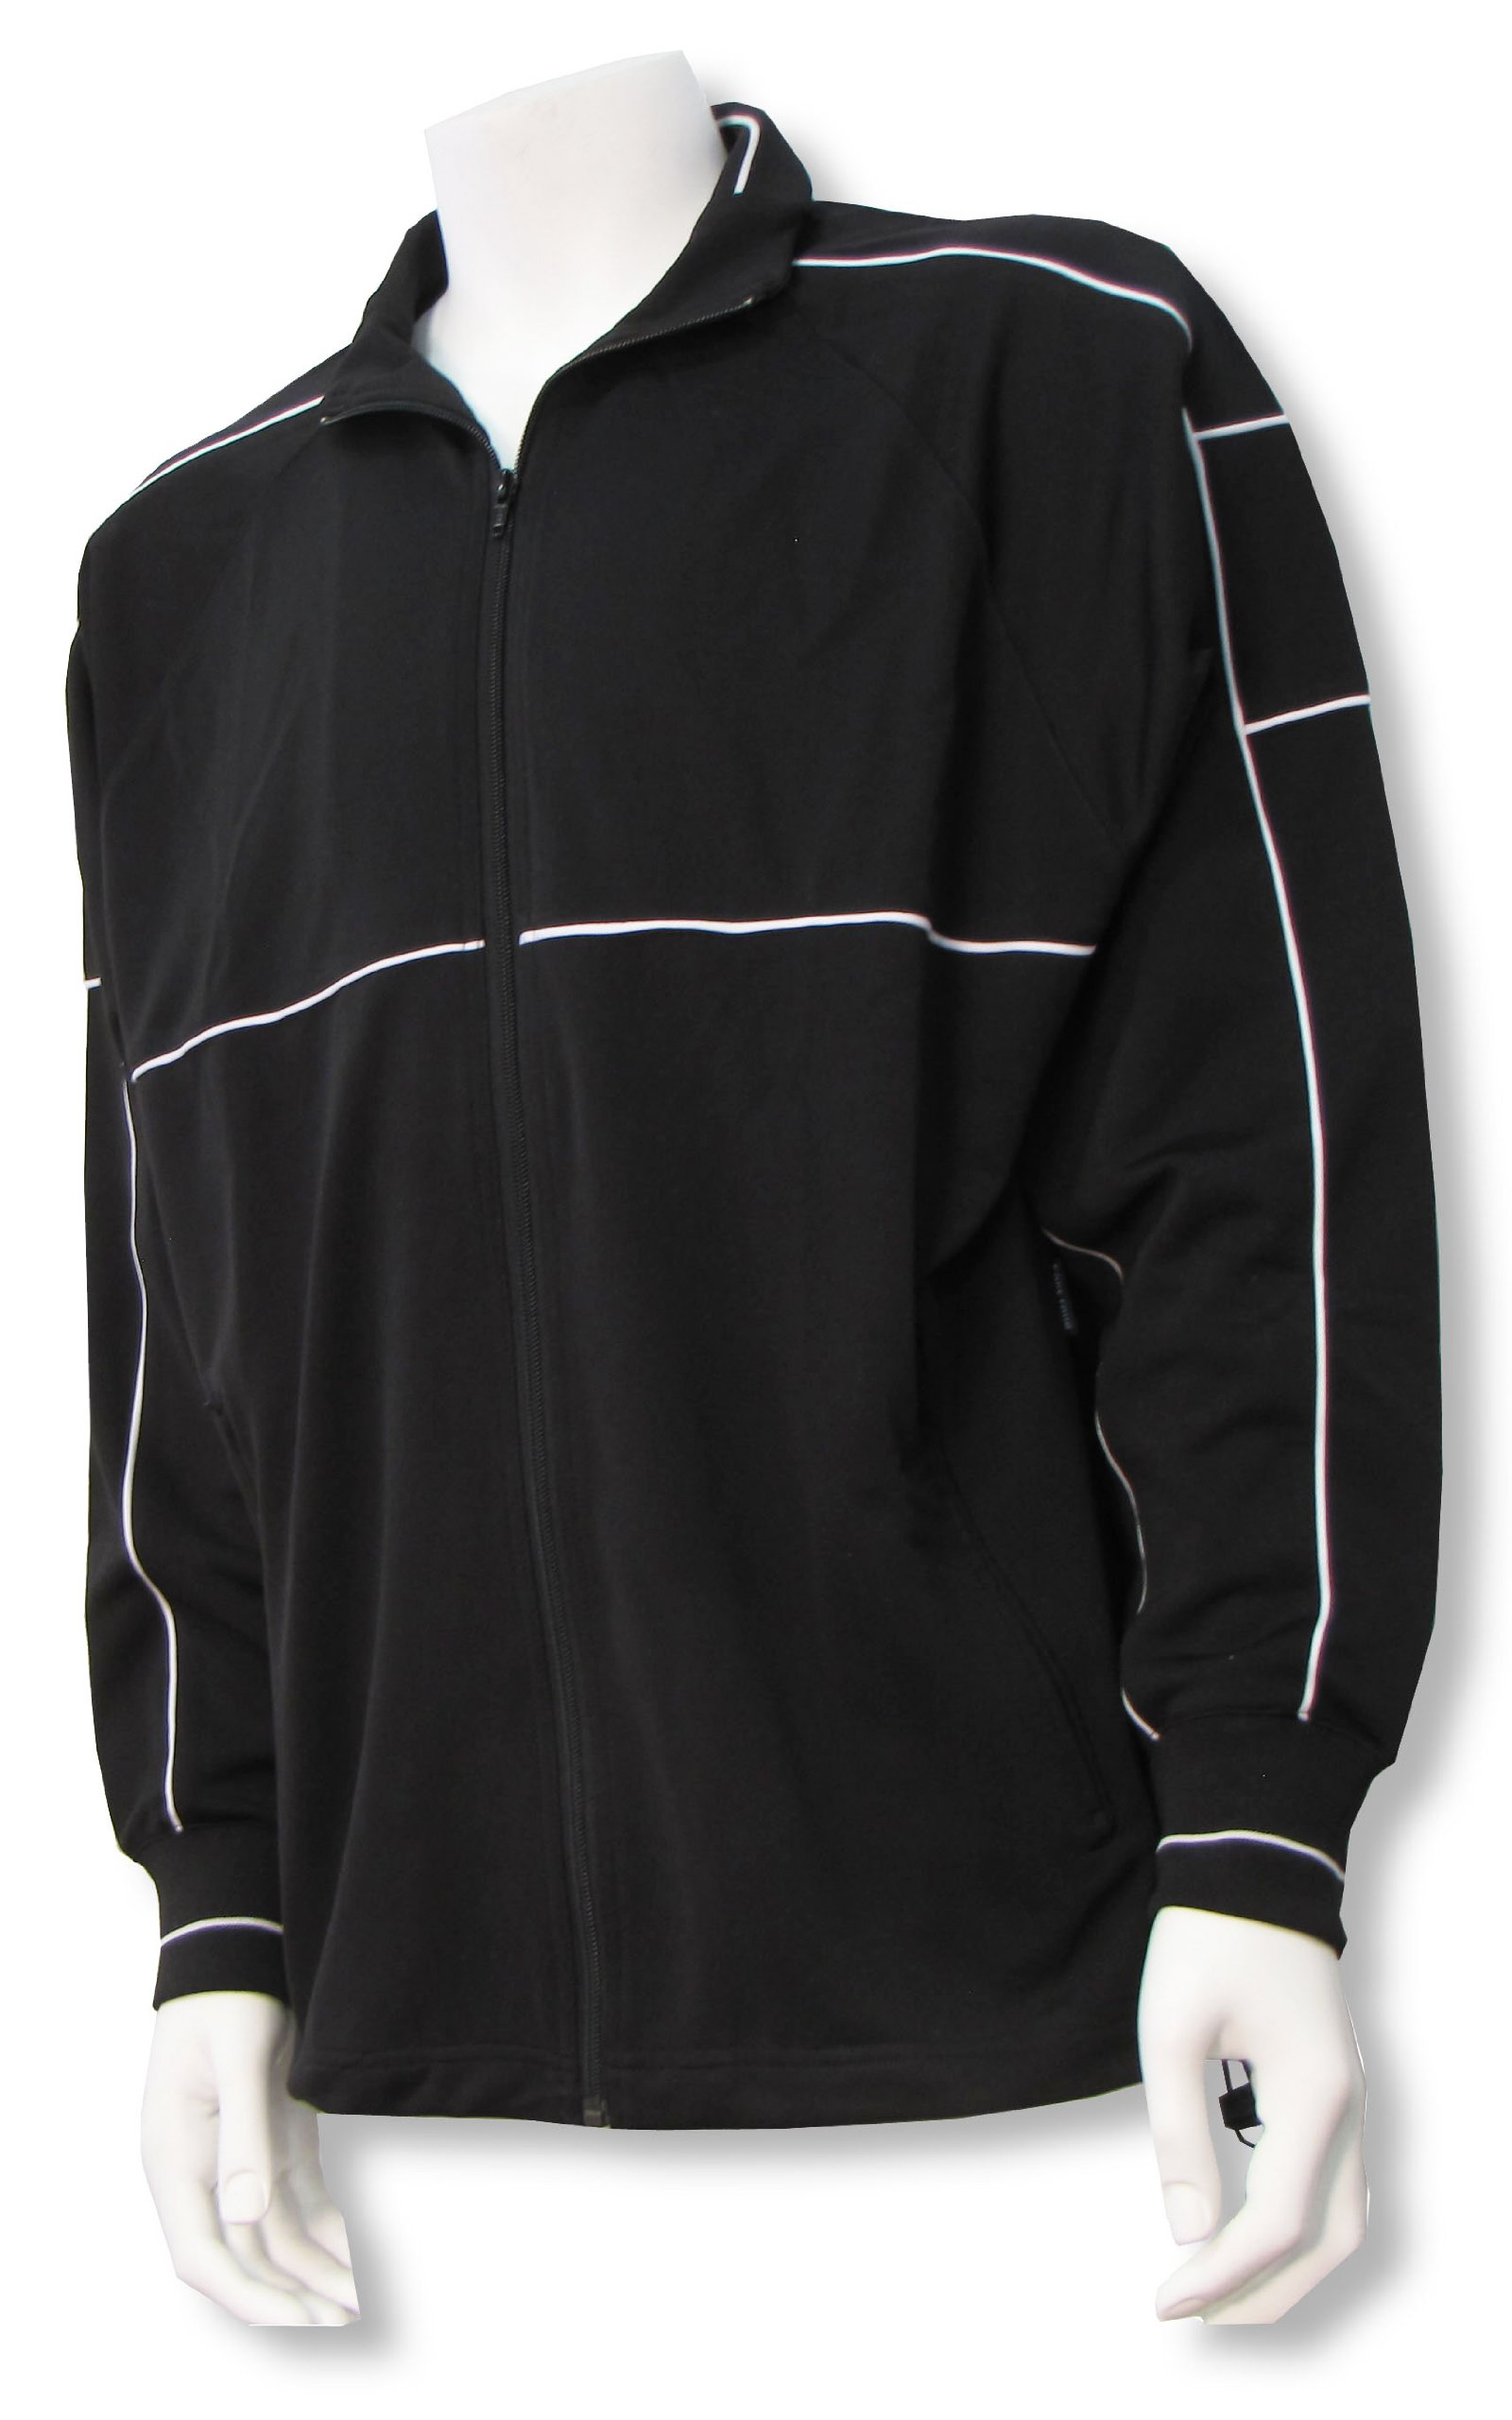 Code Four Athletics Sparta soccer poly-knit warmup jacket - size Youth S - Black/Black by Code Four Athletics